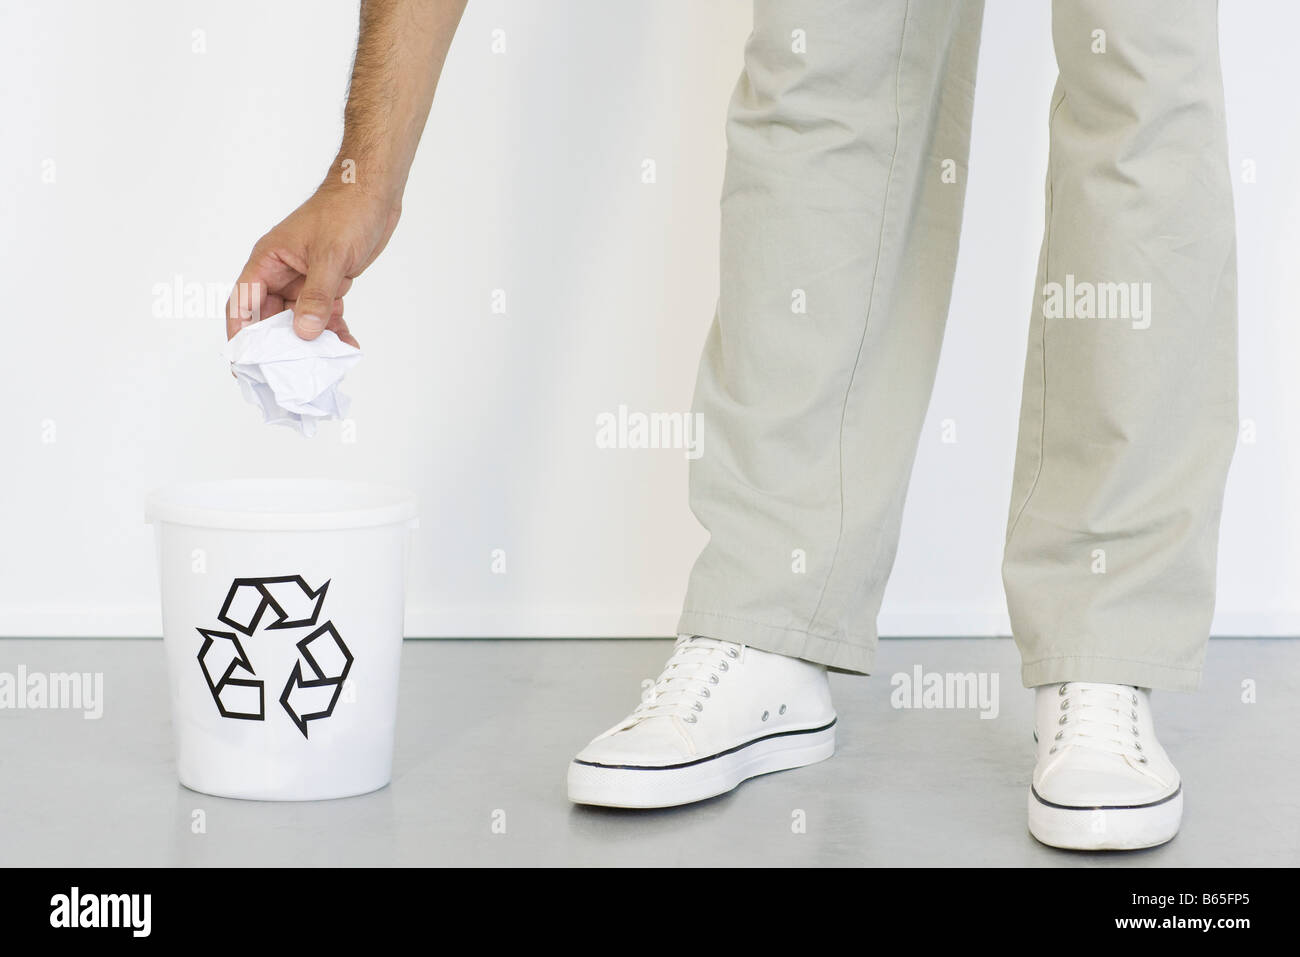 Hand placing crumpled paper into recycle bin, close-up Stock Photo